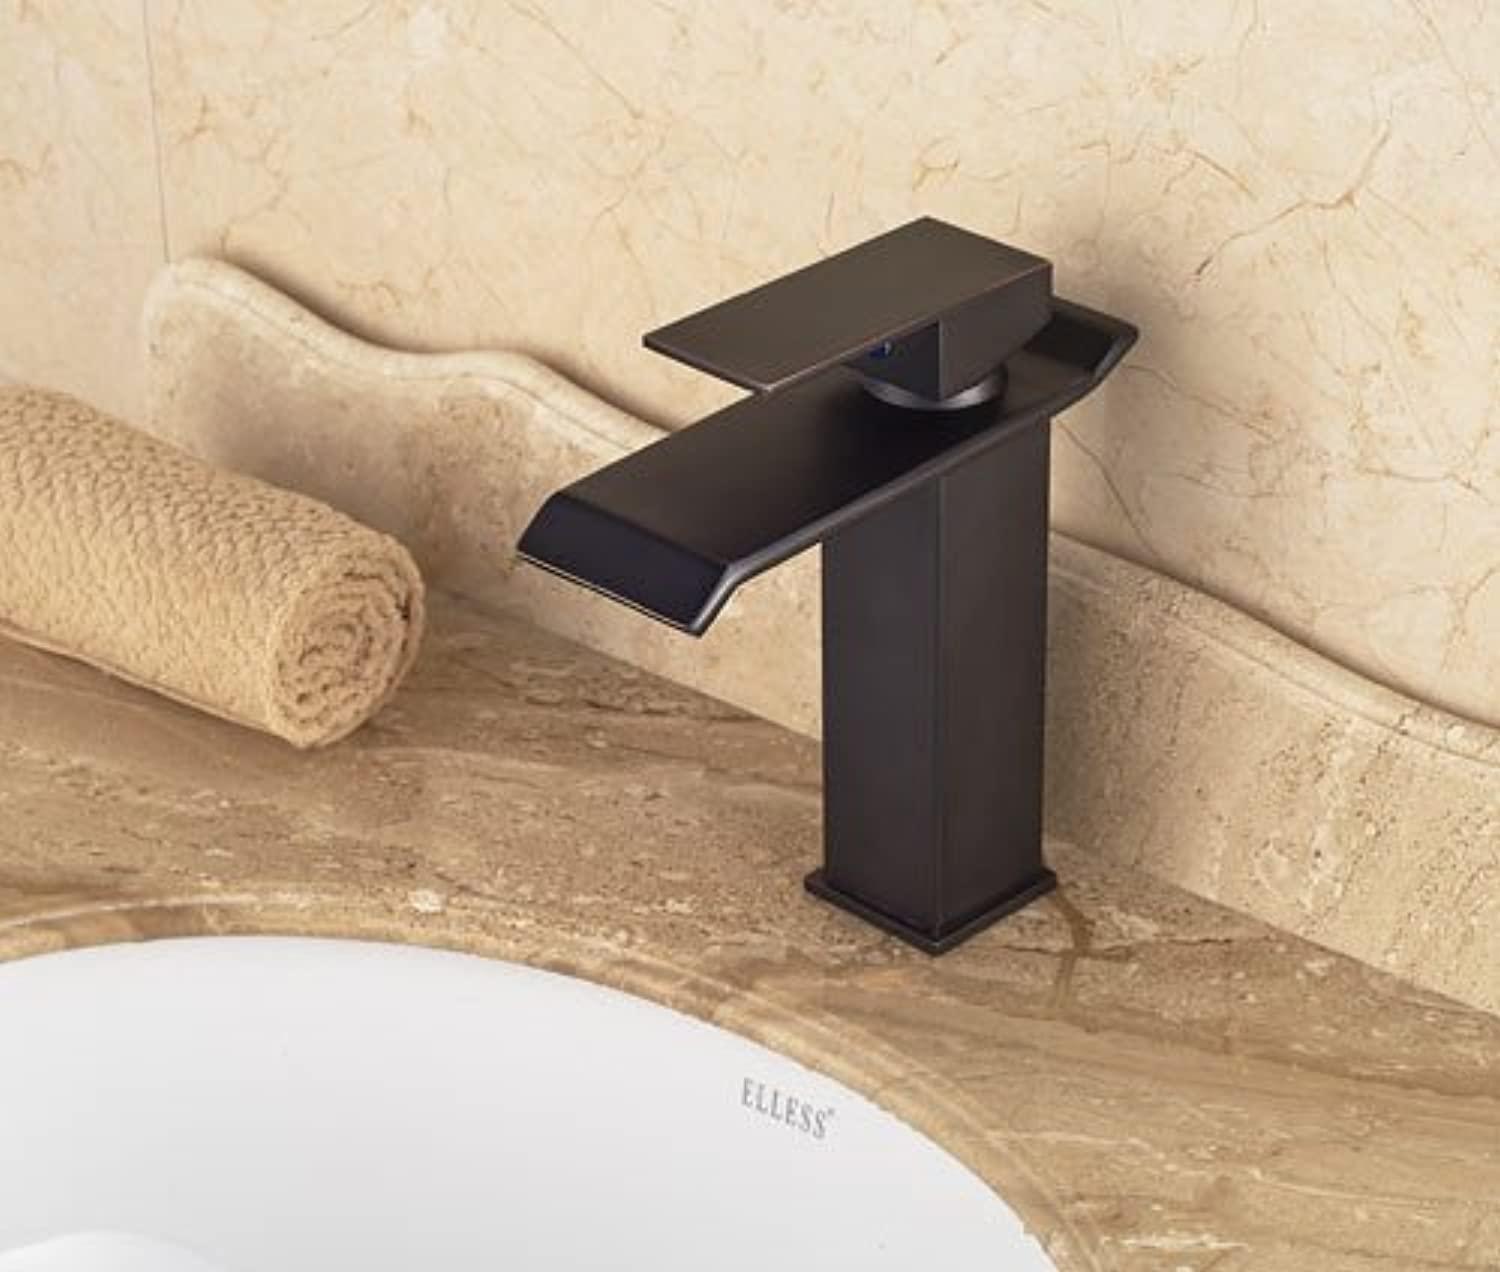 Tourmeler New Traditional Style Oil Rubbed Bronze Waterfall Bathroom Basin Faucet Single Handle Mixer Tap